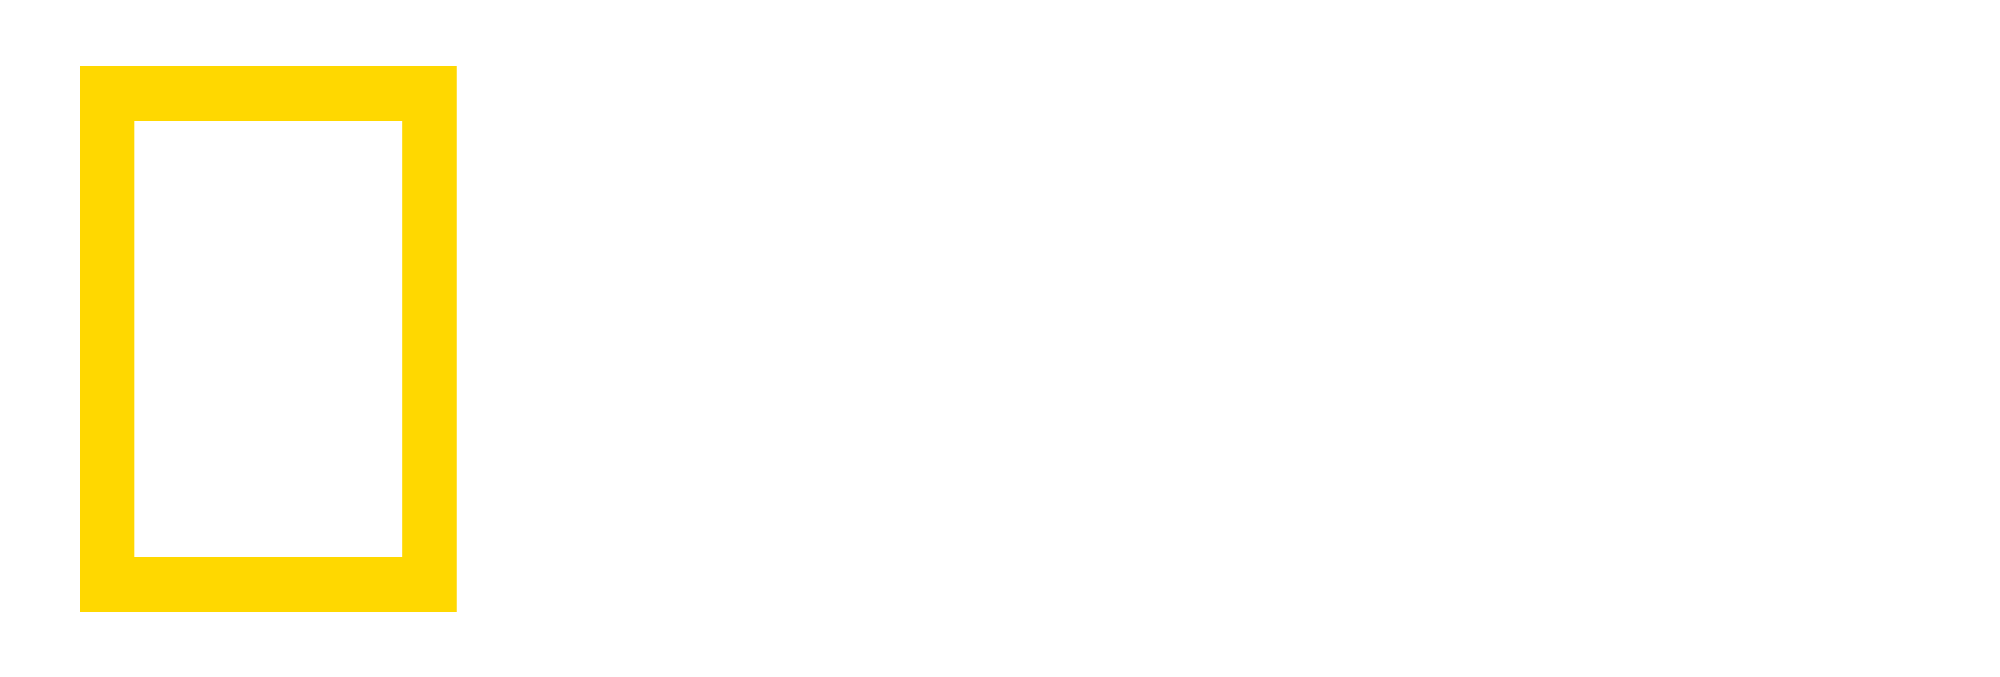 national-geographic-channel-logo-png-ng-logo-white-png-2000.png